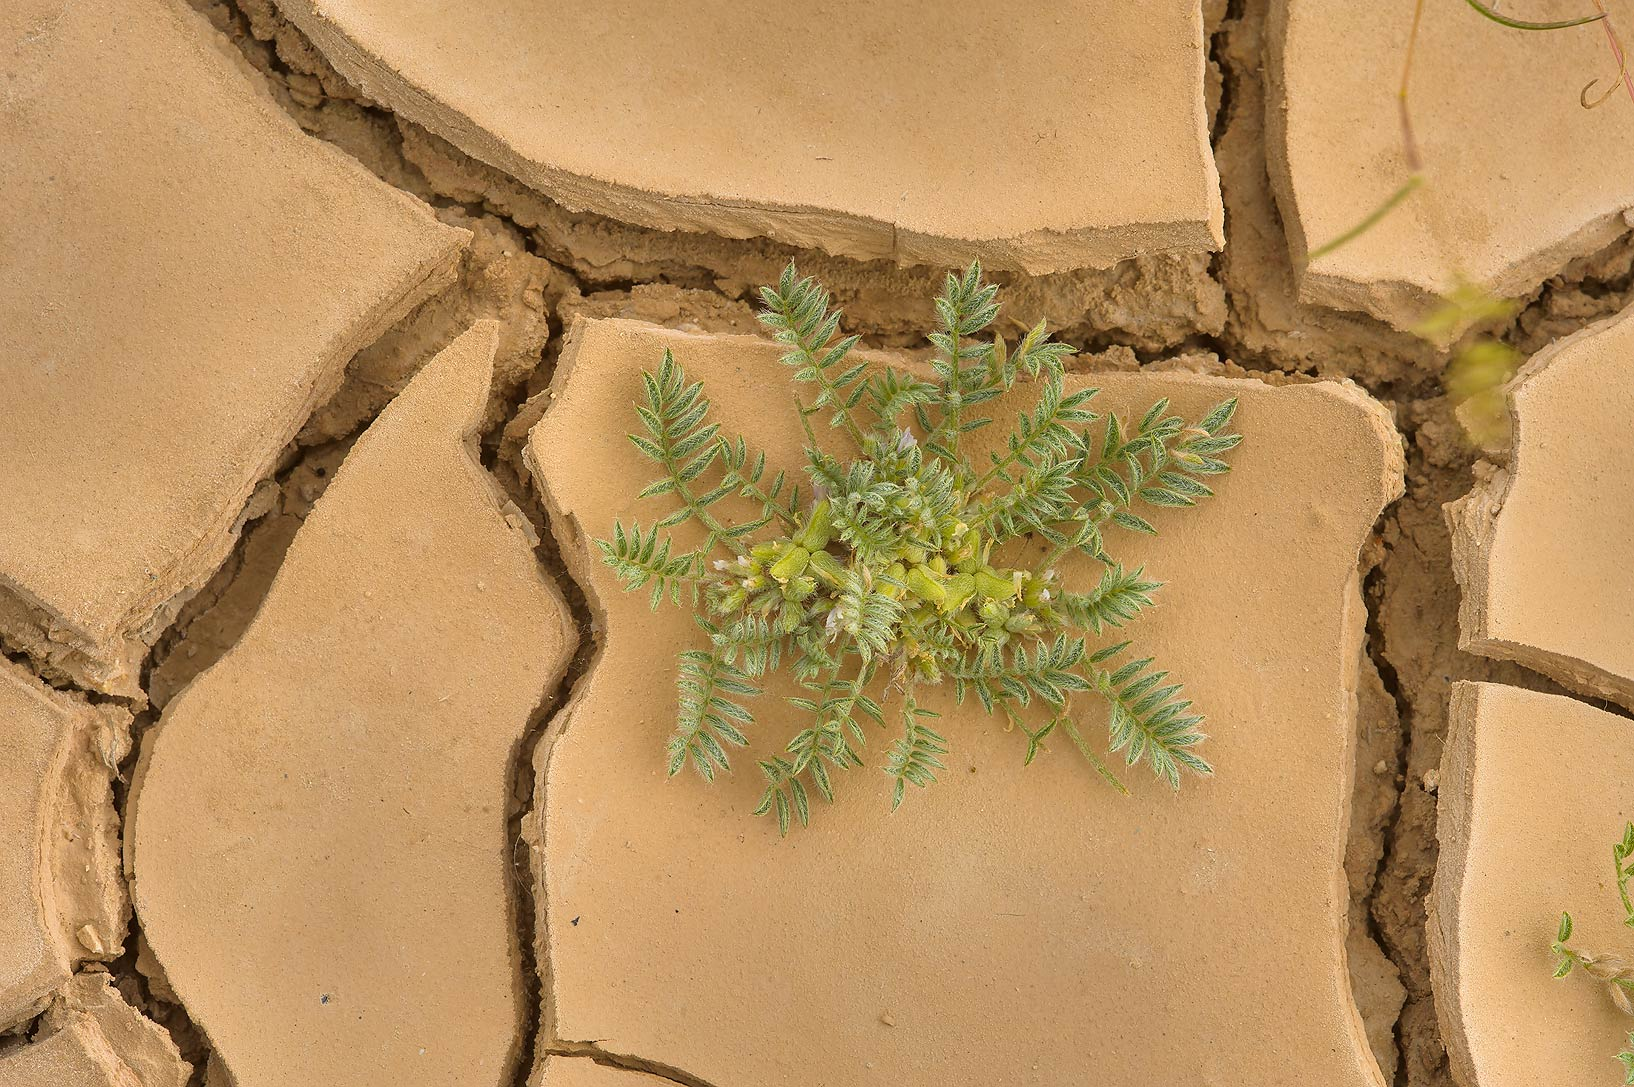 Astragalus tribuloides on dry silt in area of Ras Laffan farms. Northern Qatar